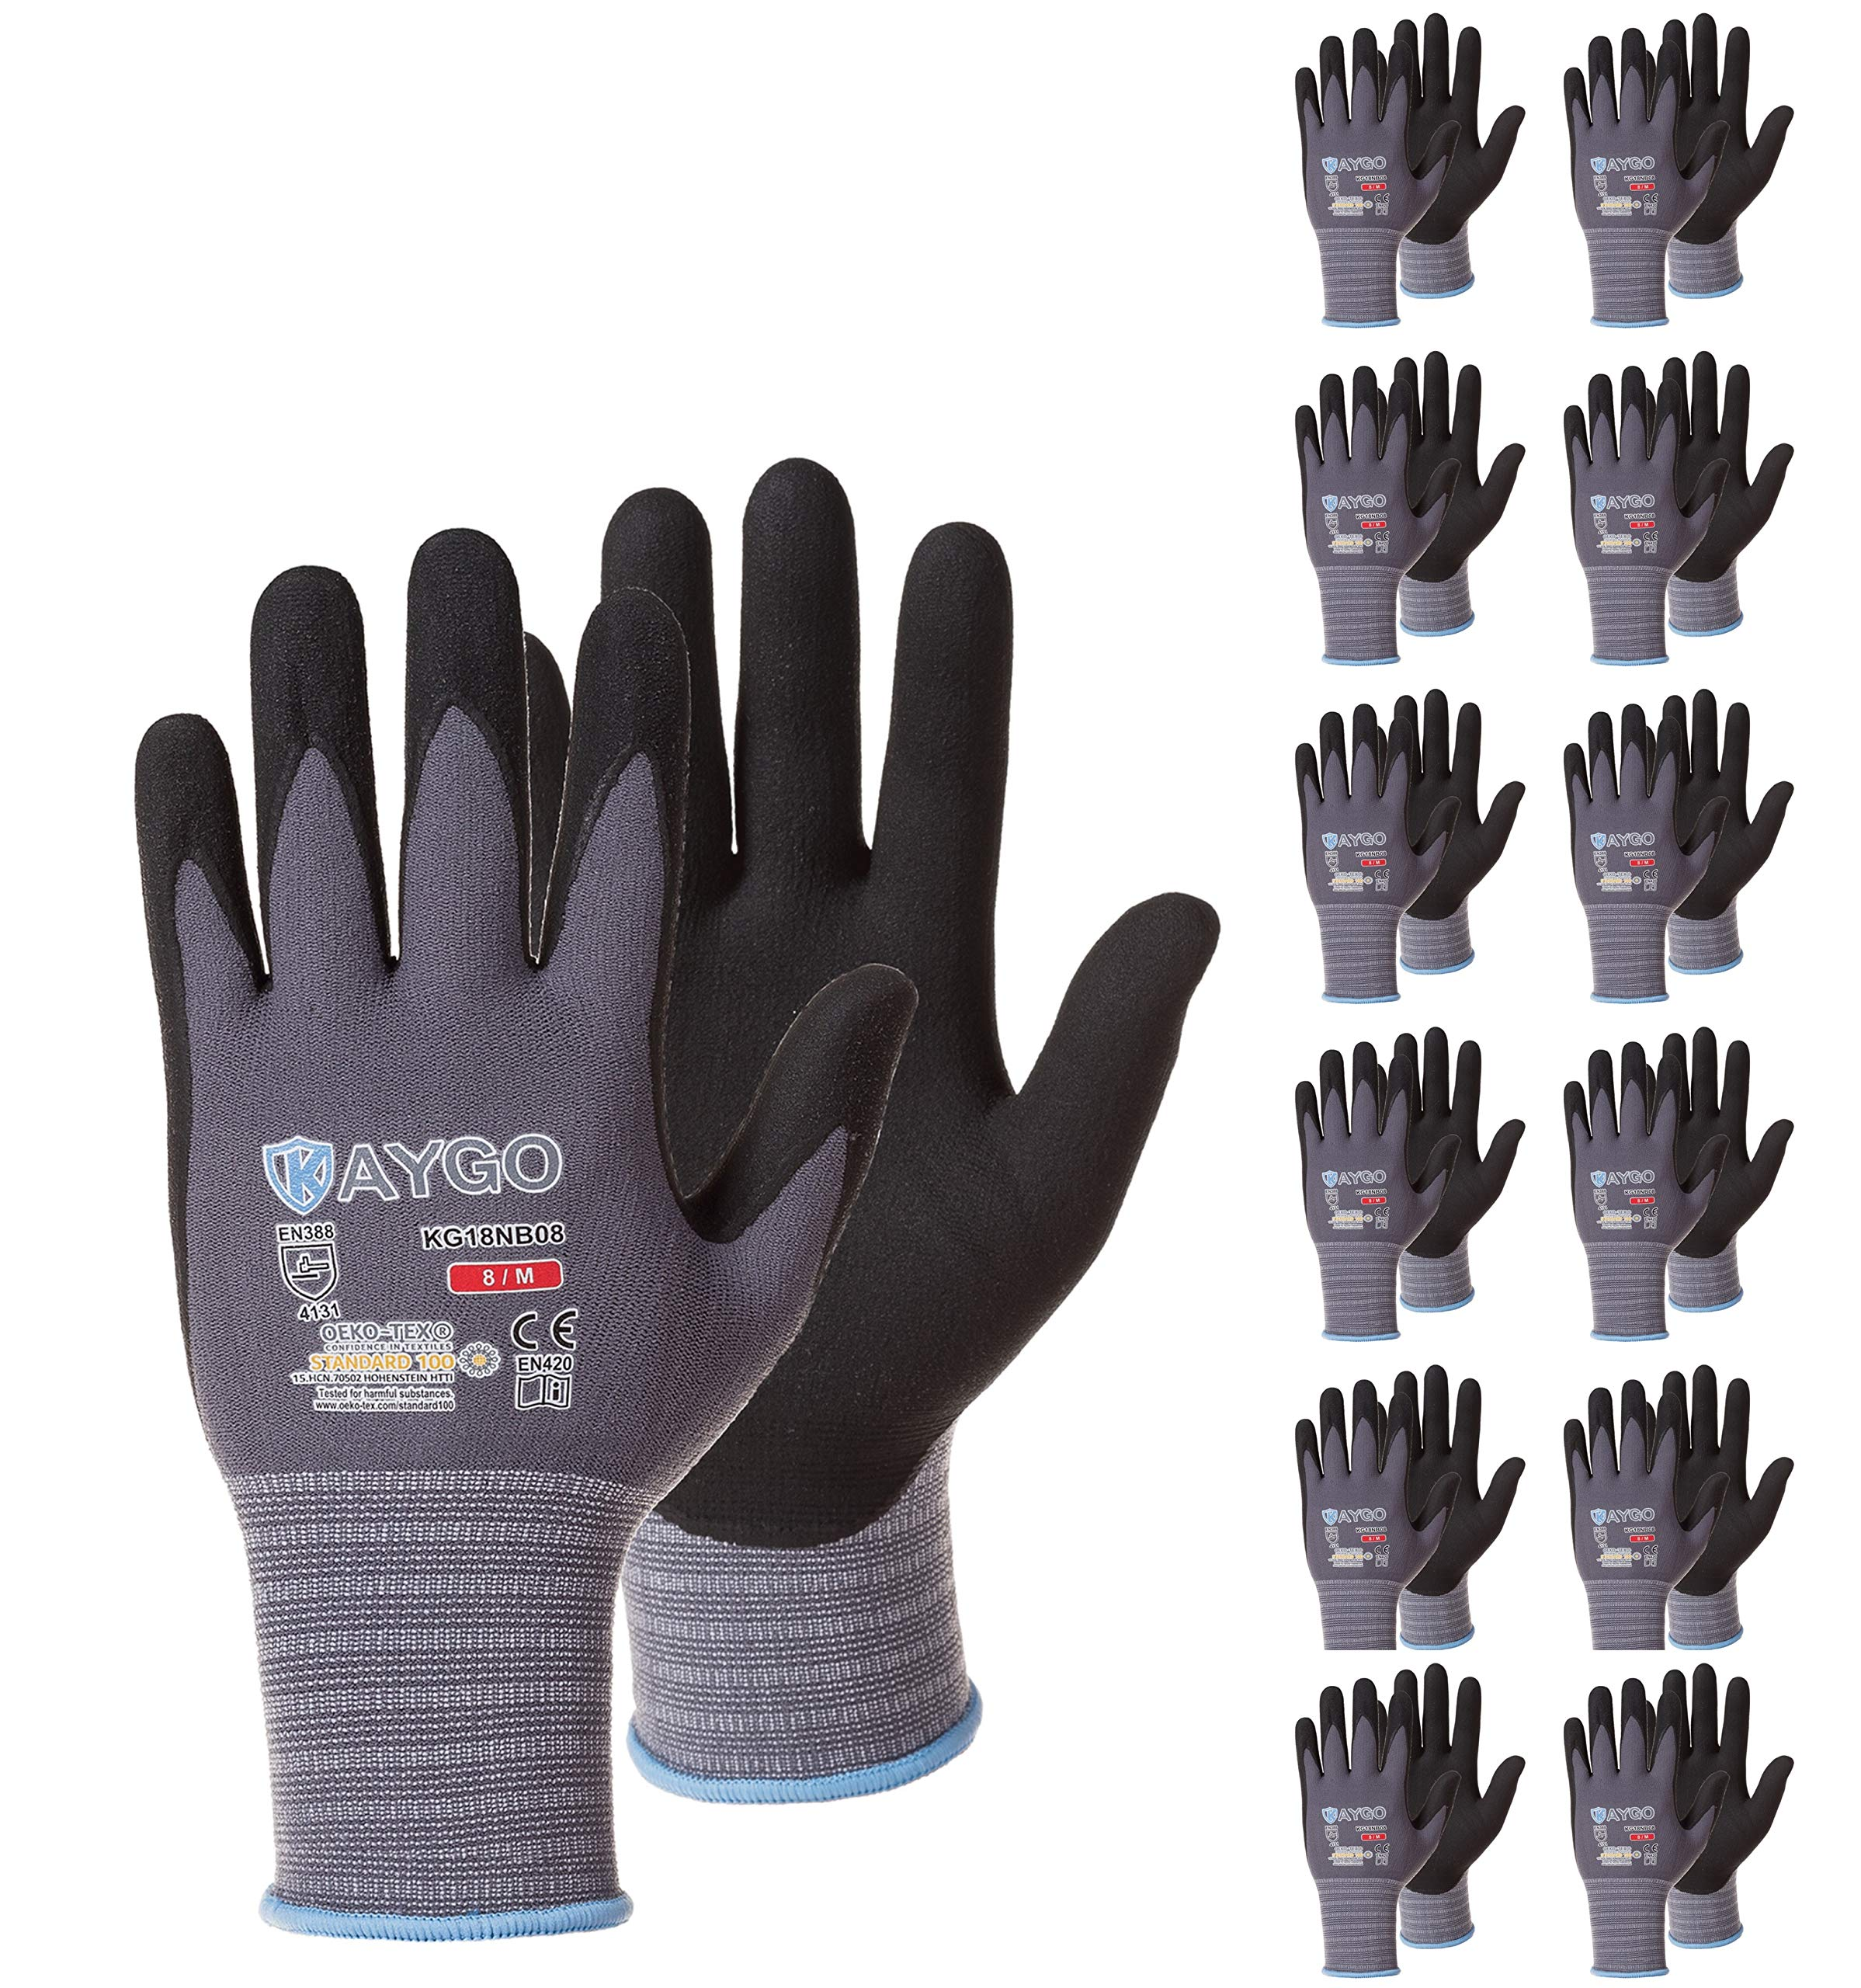 Safety Work Gloves MicroFoam Nitrile Coated-12 Pairs,KAYGO KG18NB,Seamless Knit Nylon Glove with Black Micro-Foam Nitrile Grip,Ideal for General Purpose,Automotive,Home Improvement,Painting by KAYGO